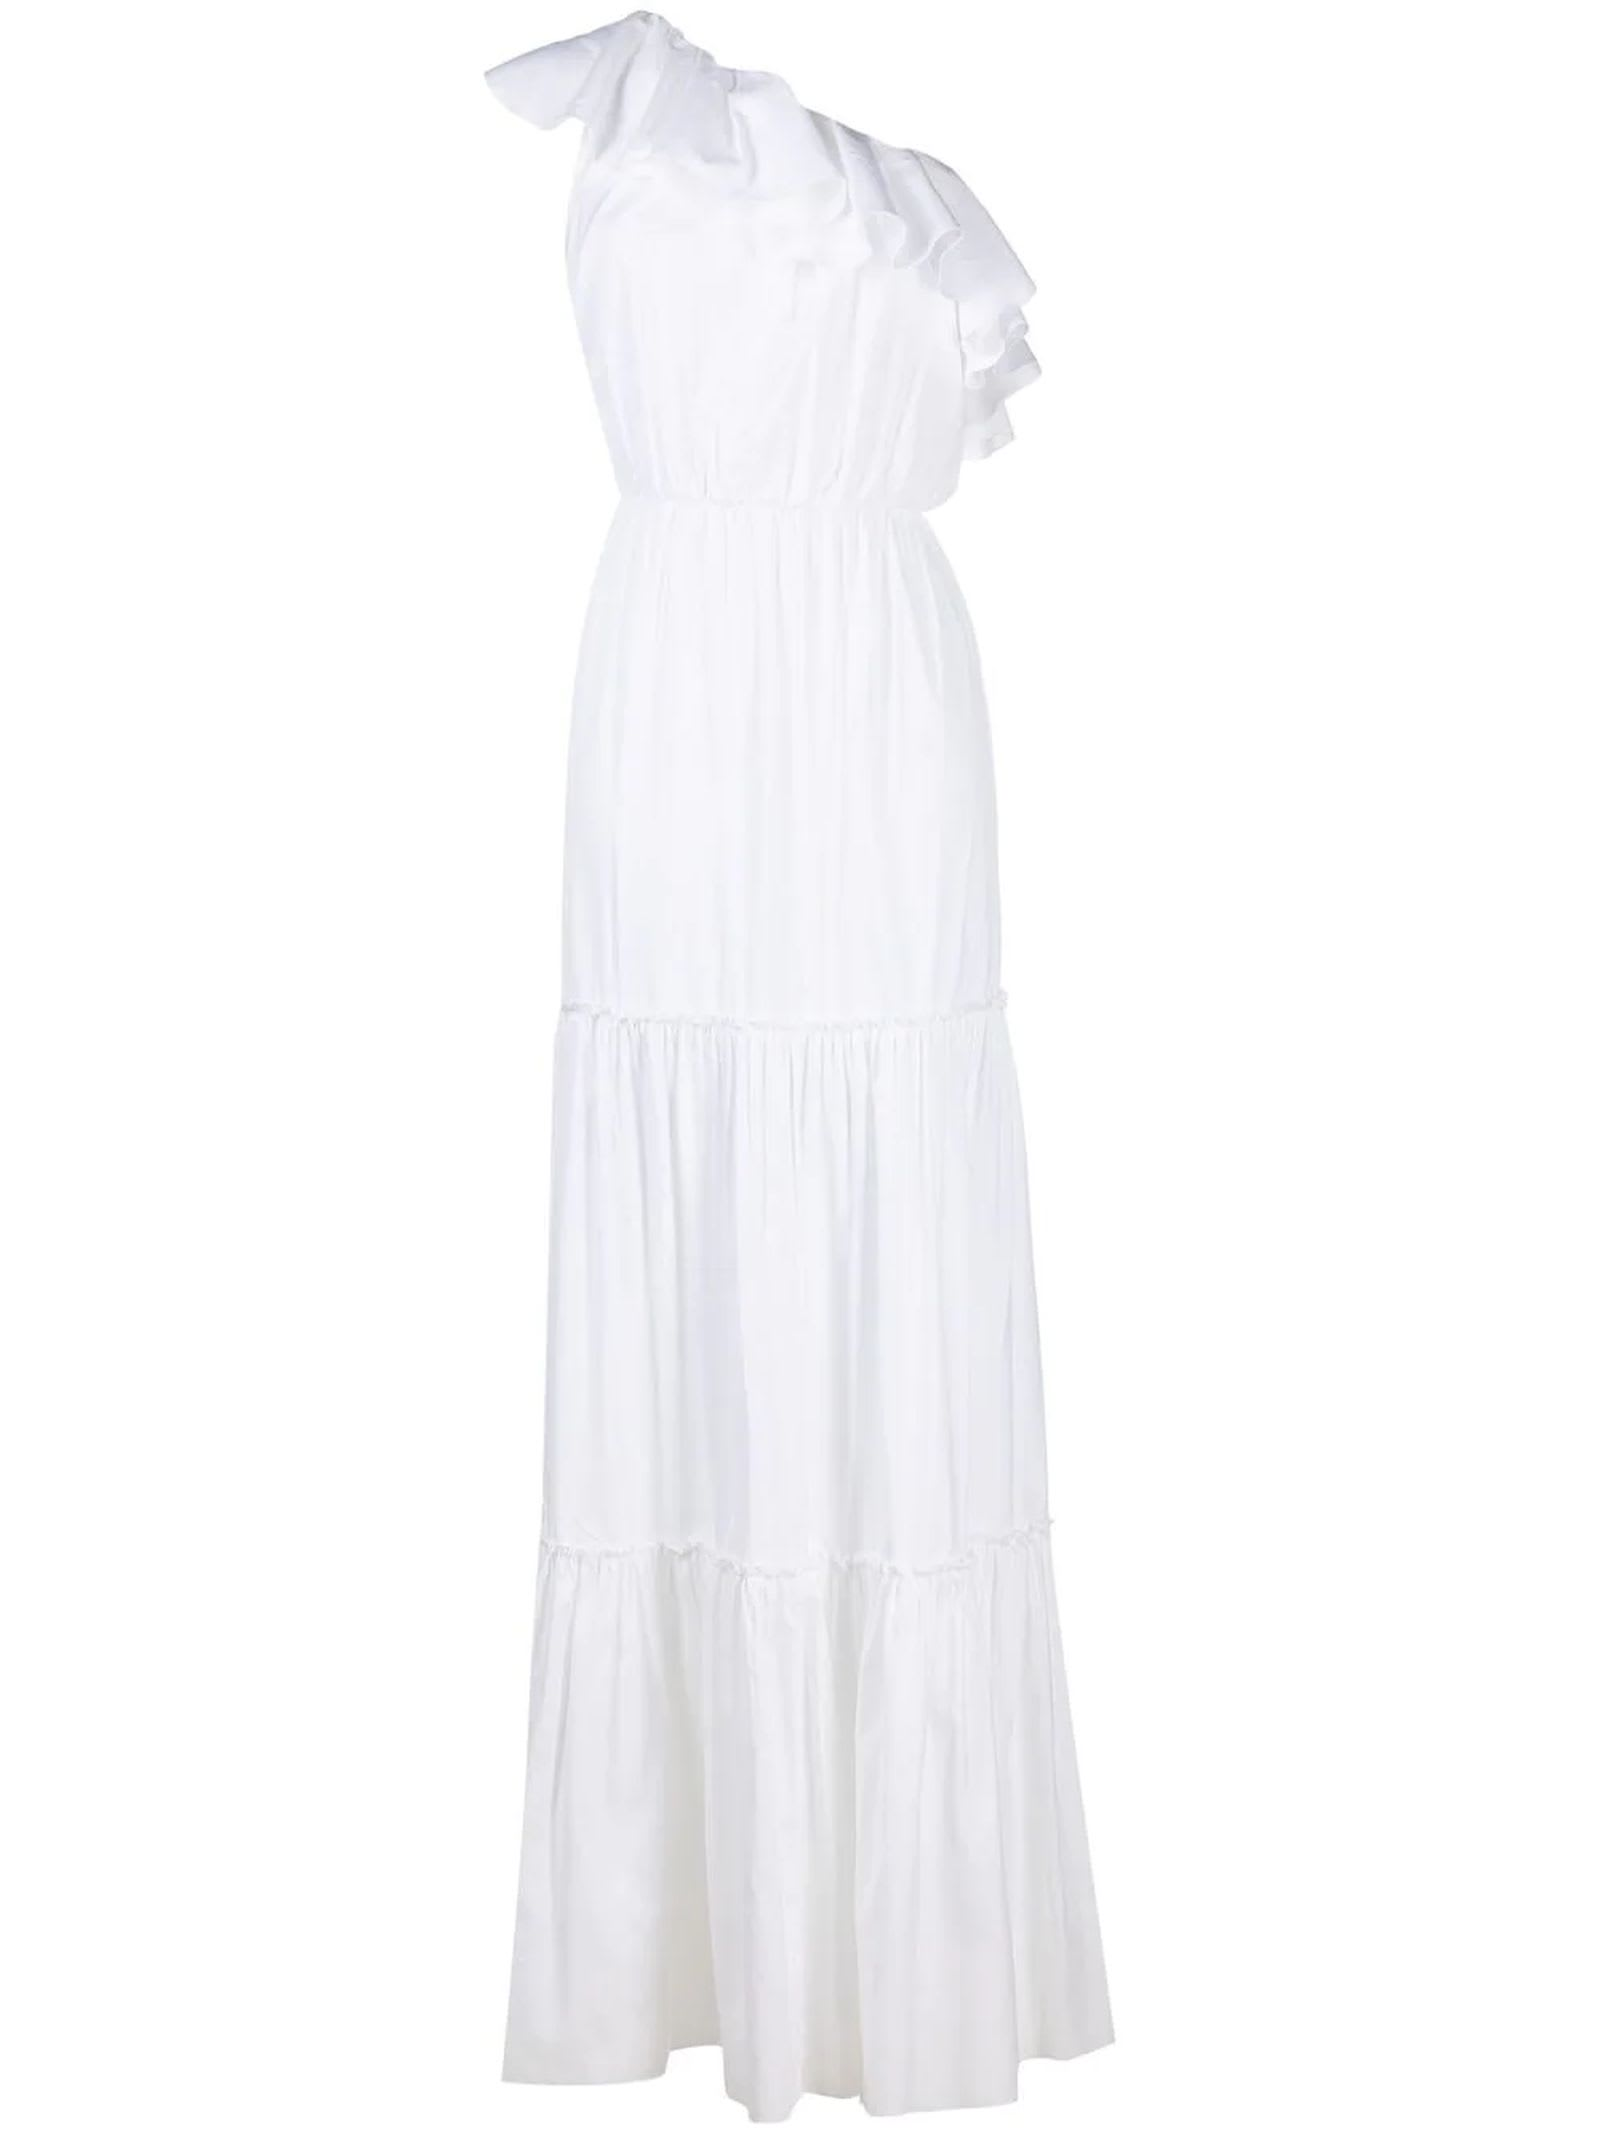 Buy Federica Tosi White Cotton And Silk Dress online, shop Federica Tosi with free shipping